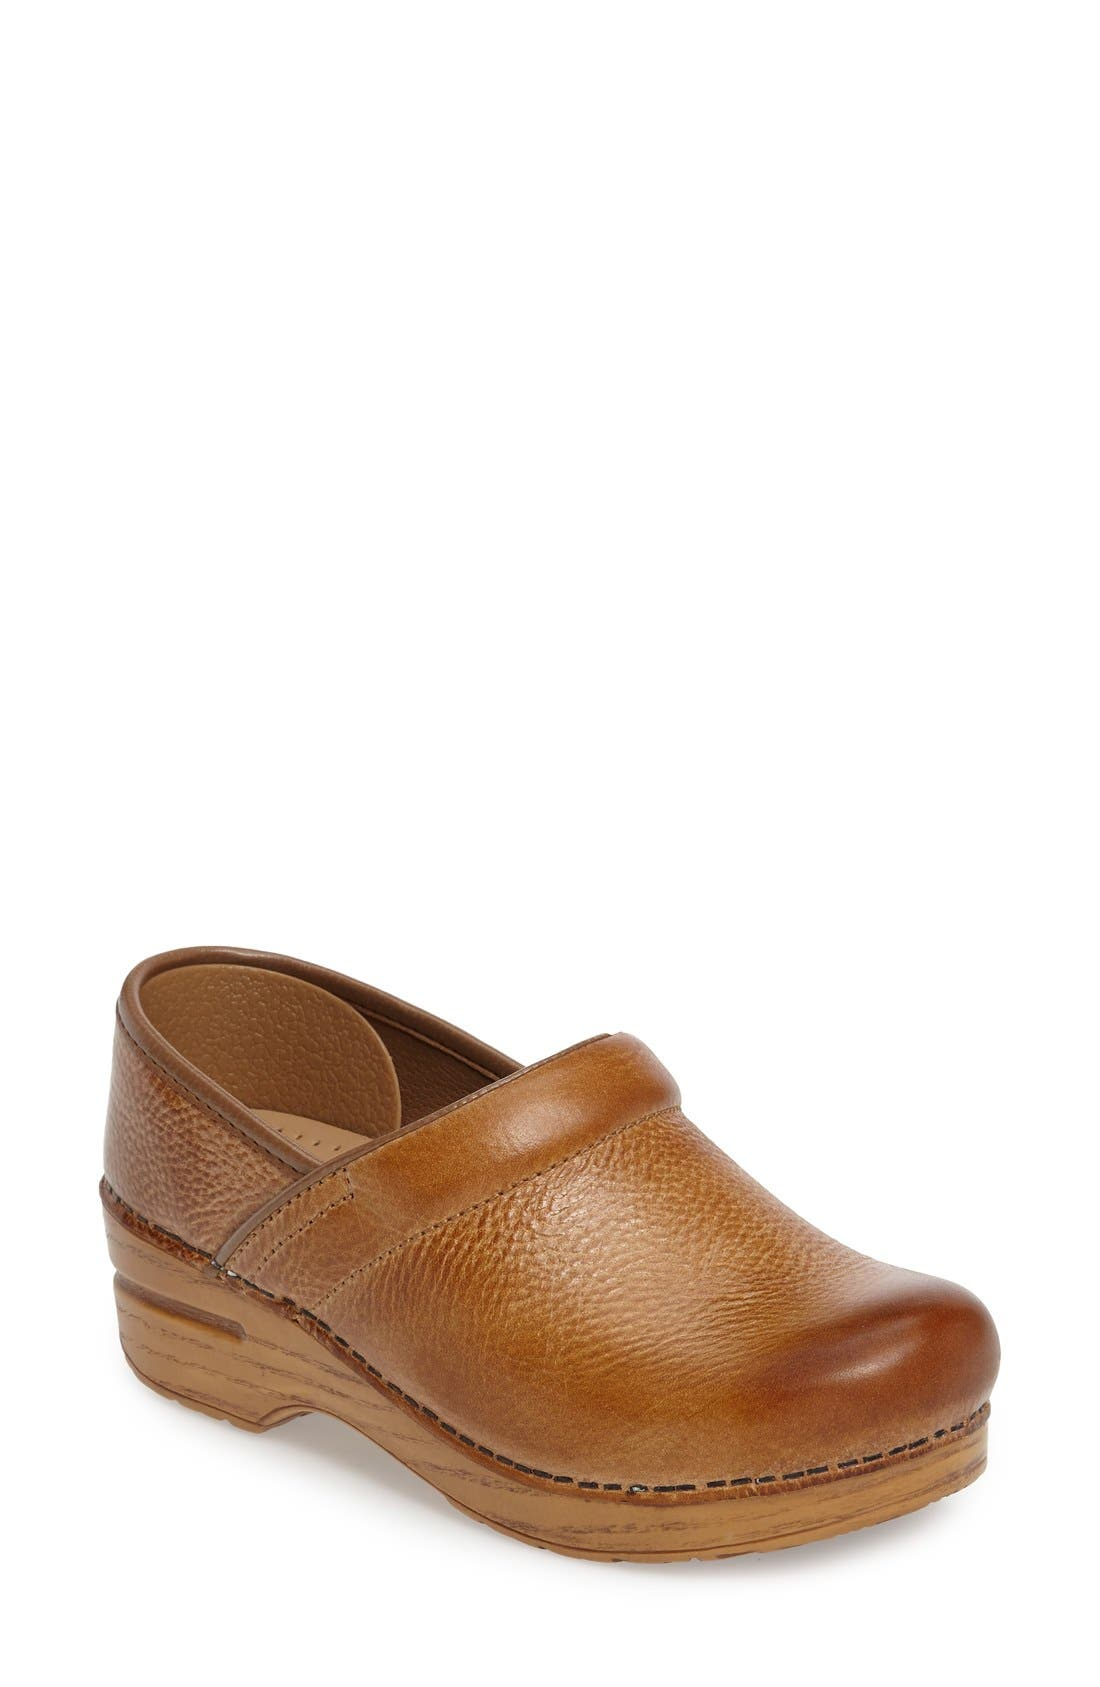 DISTRESSED PROFESSIONAL CLOG